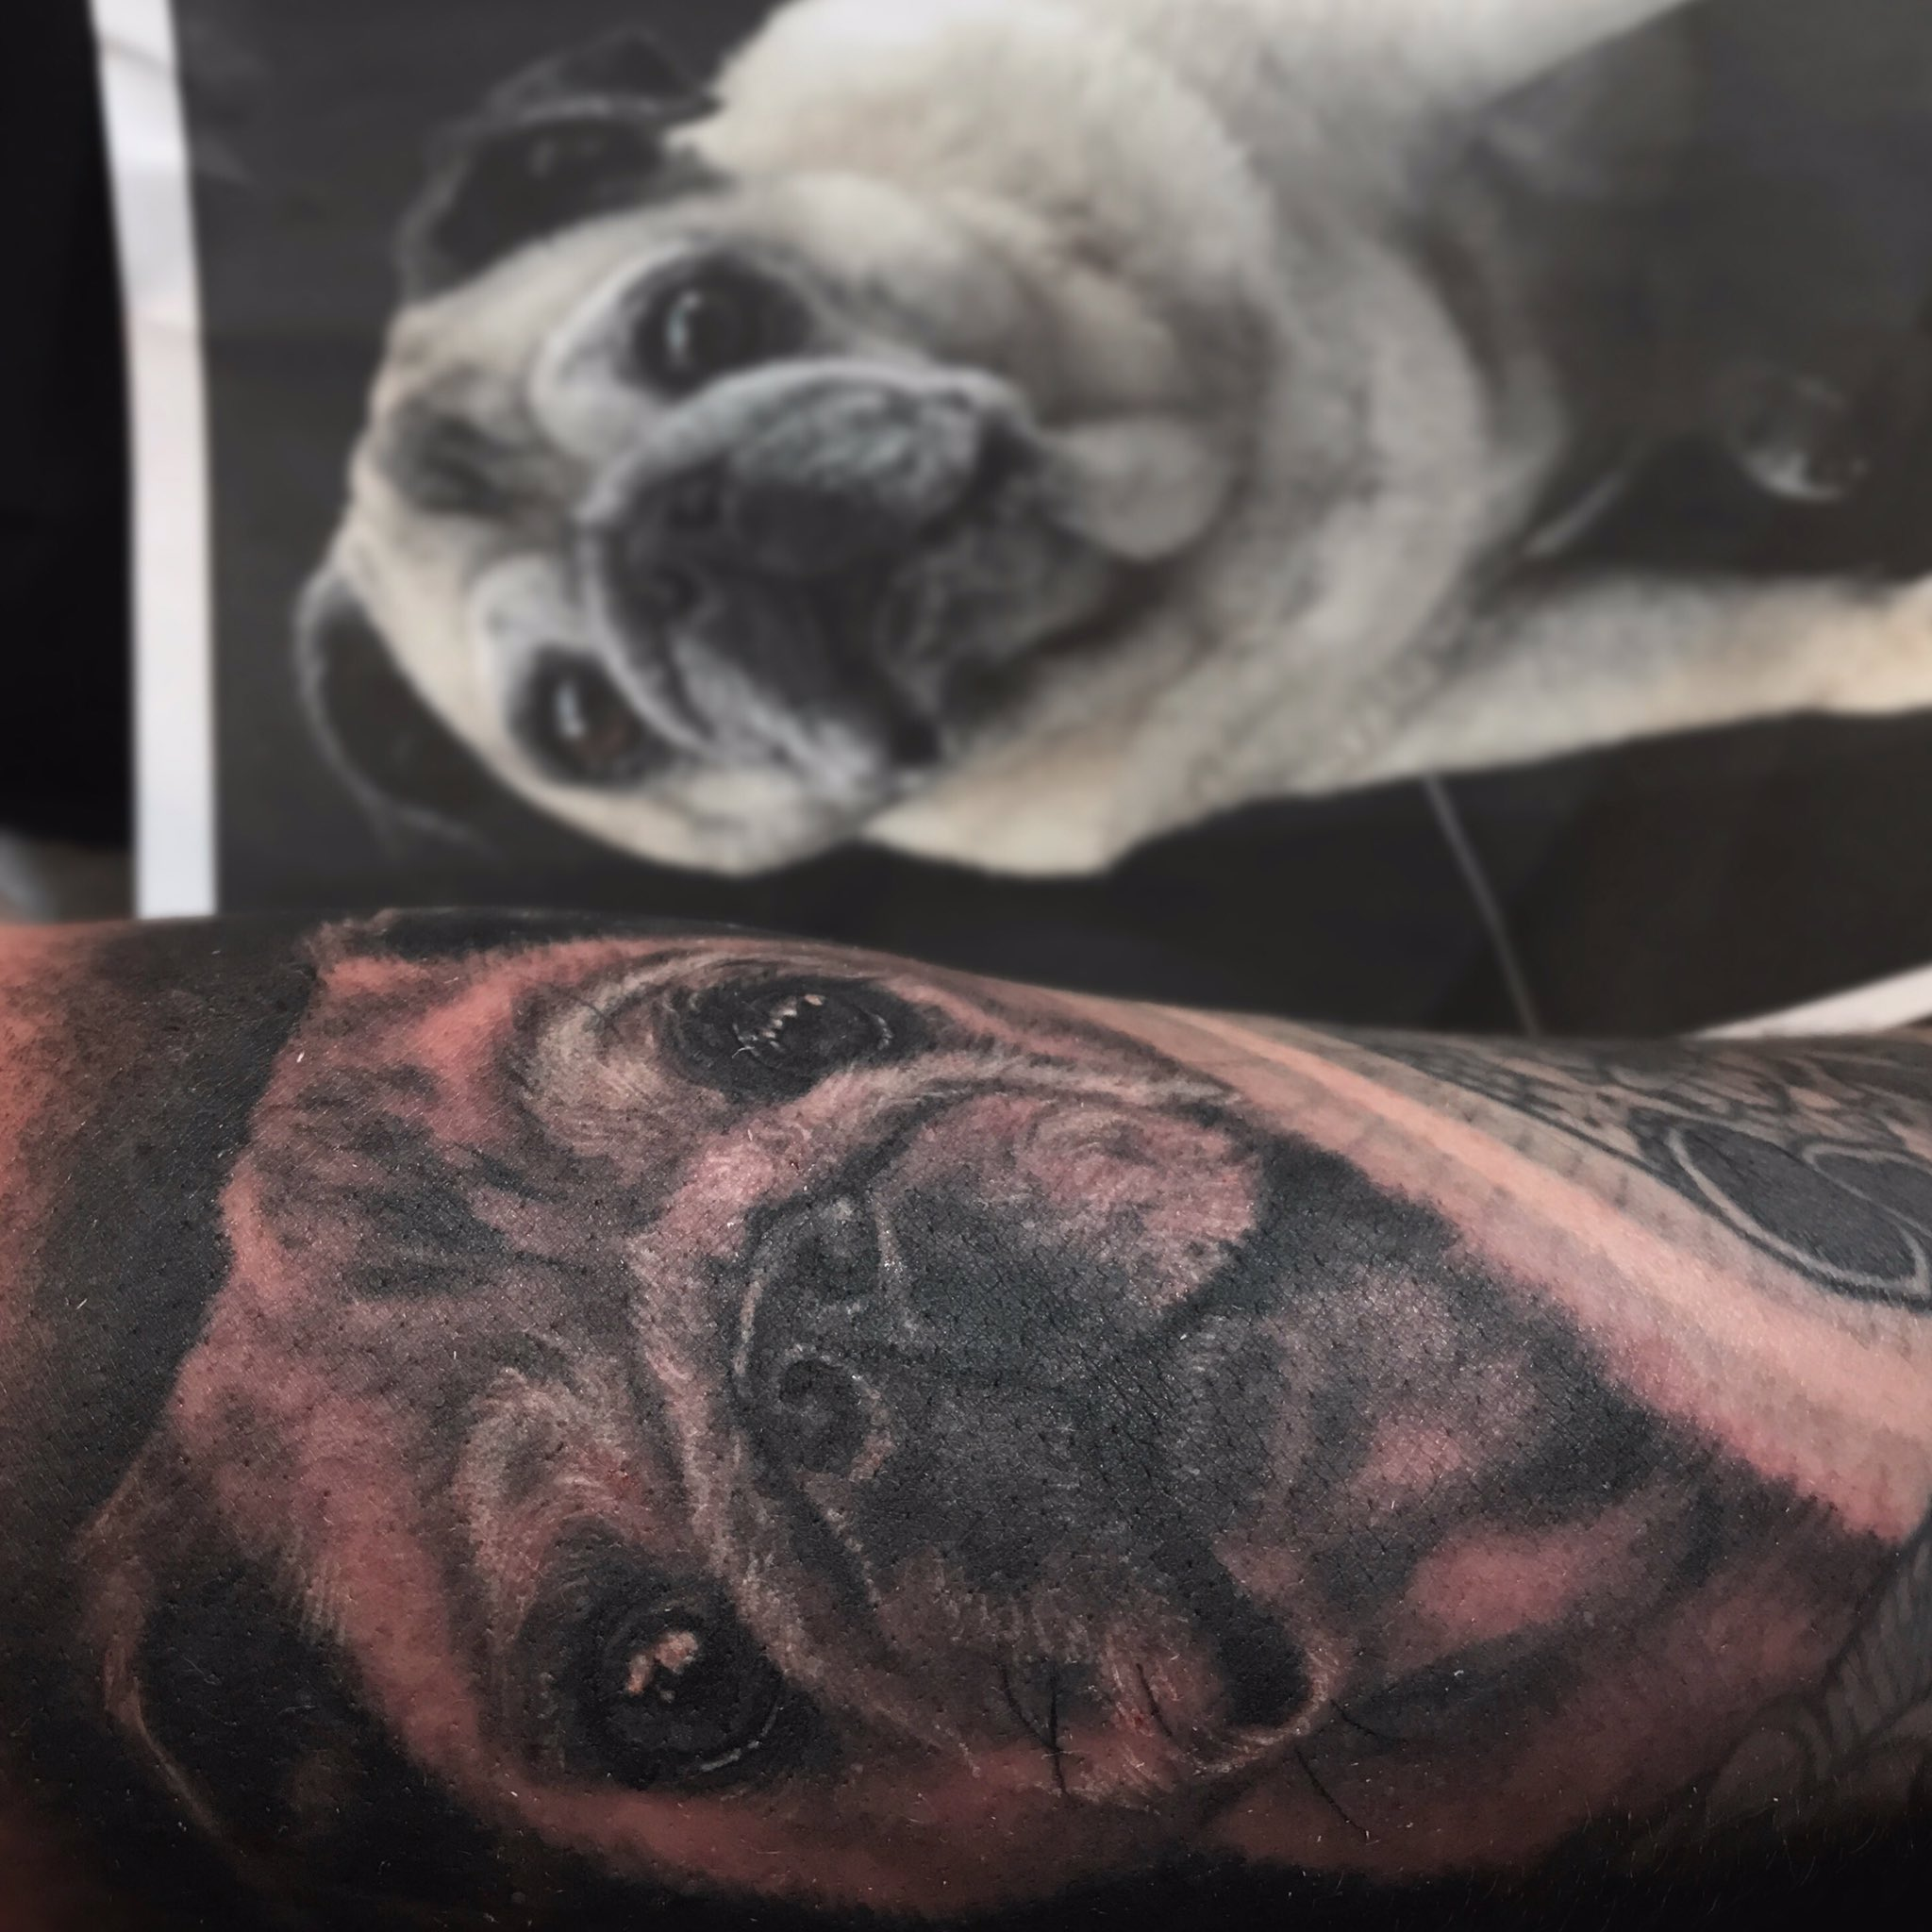 Thank you to @ValleyEyewear for letting me tattoo this portrait of your beloved pug-baby on you. 🖤 https://t.co/r2cO8A1Hf9